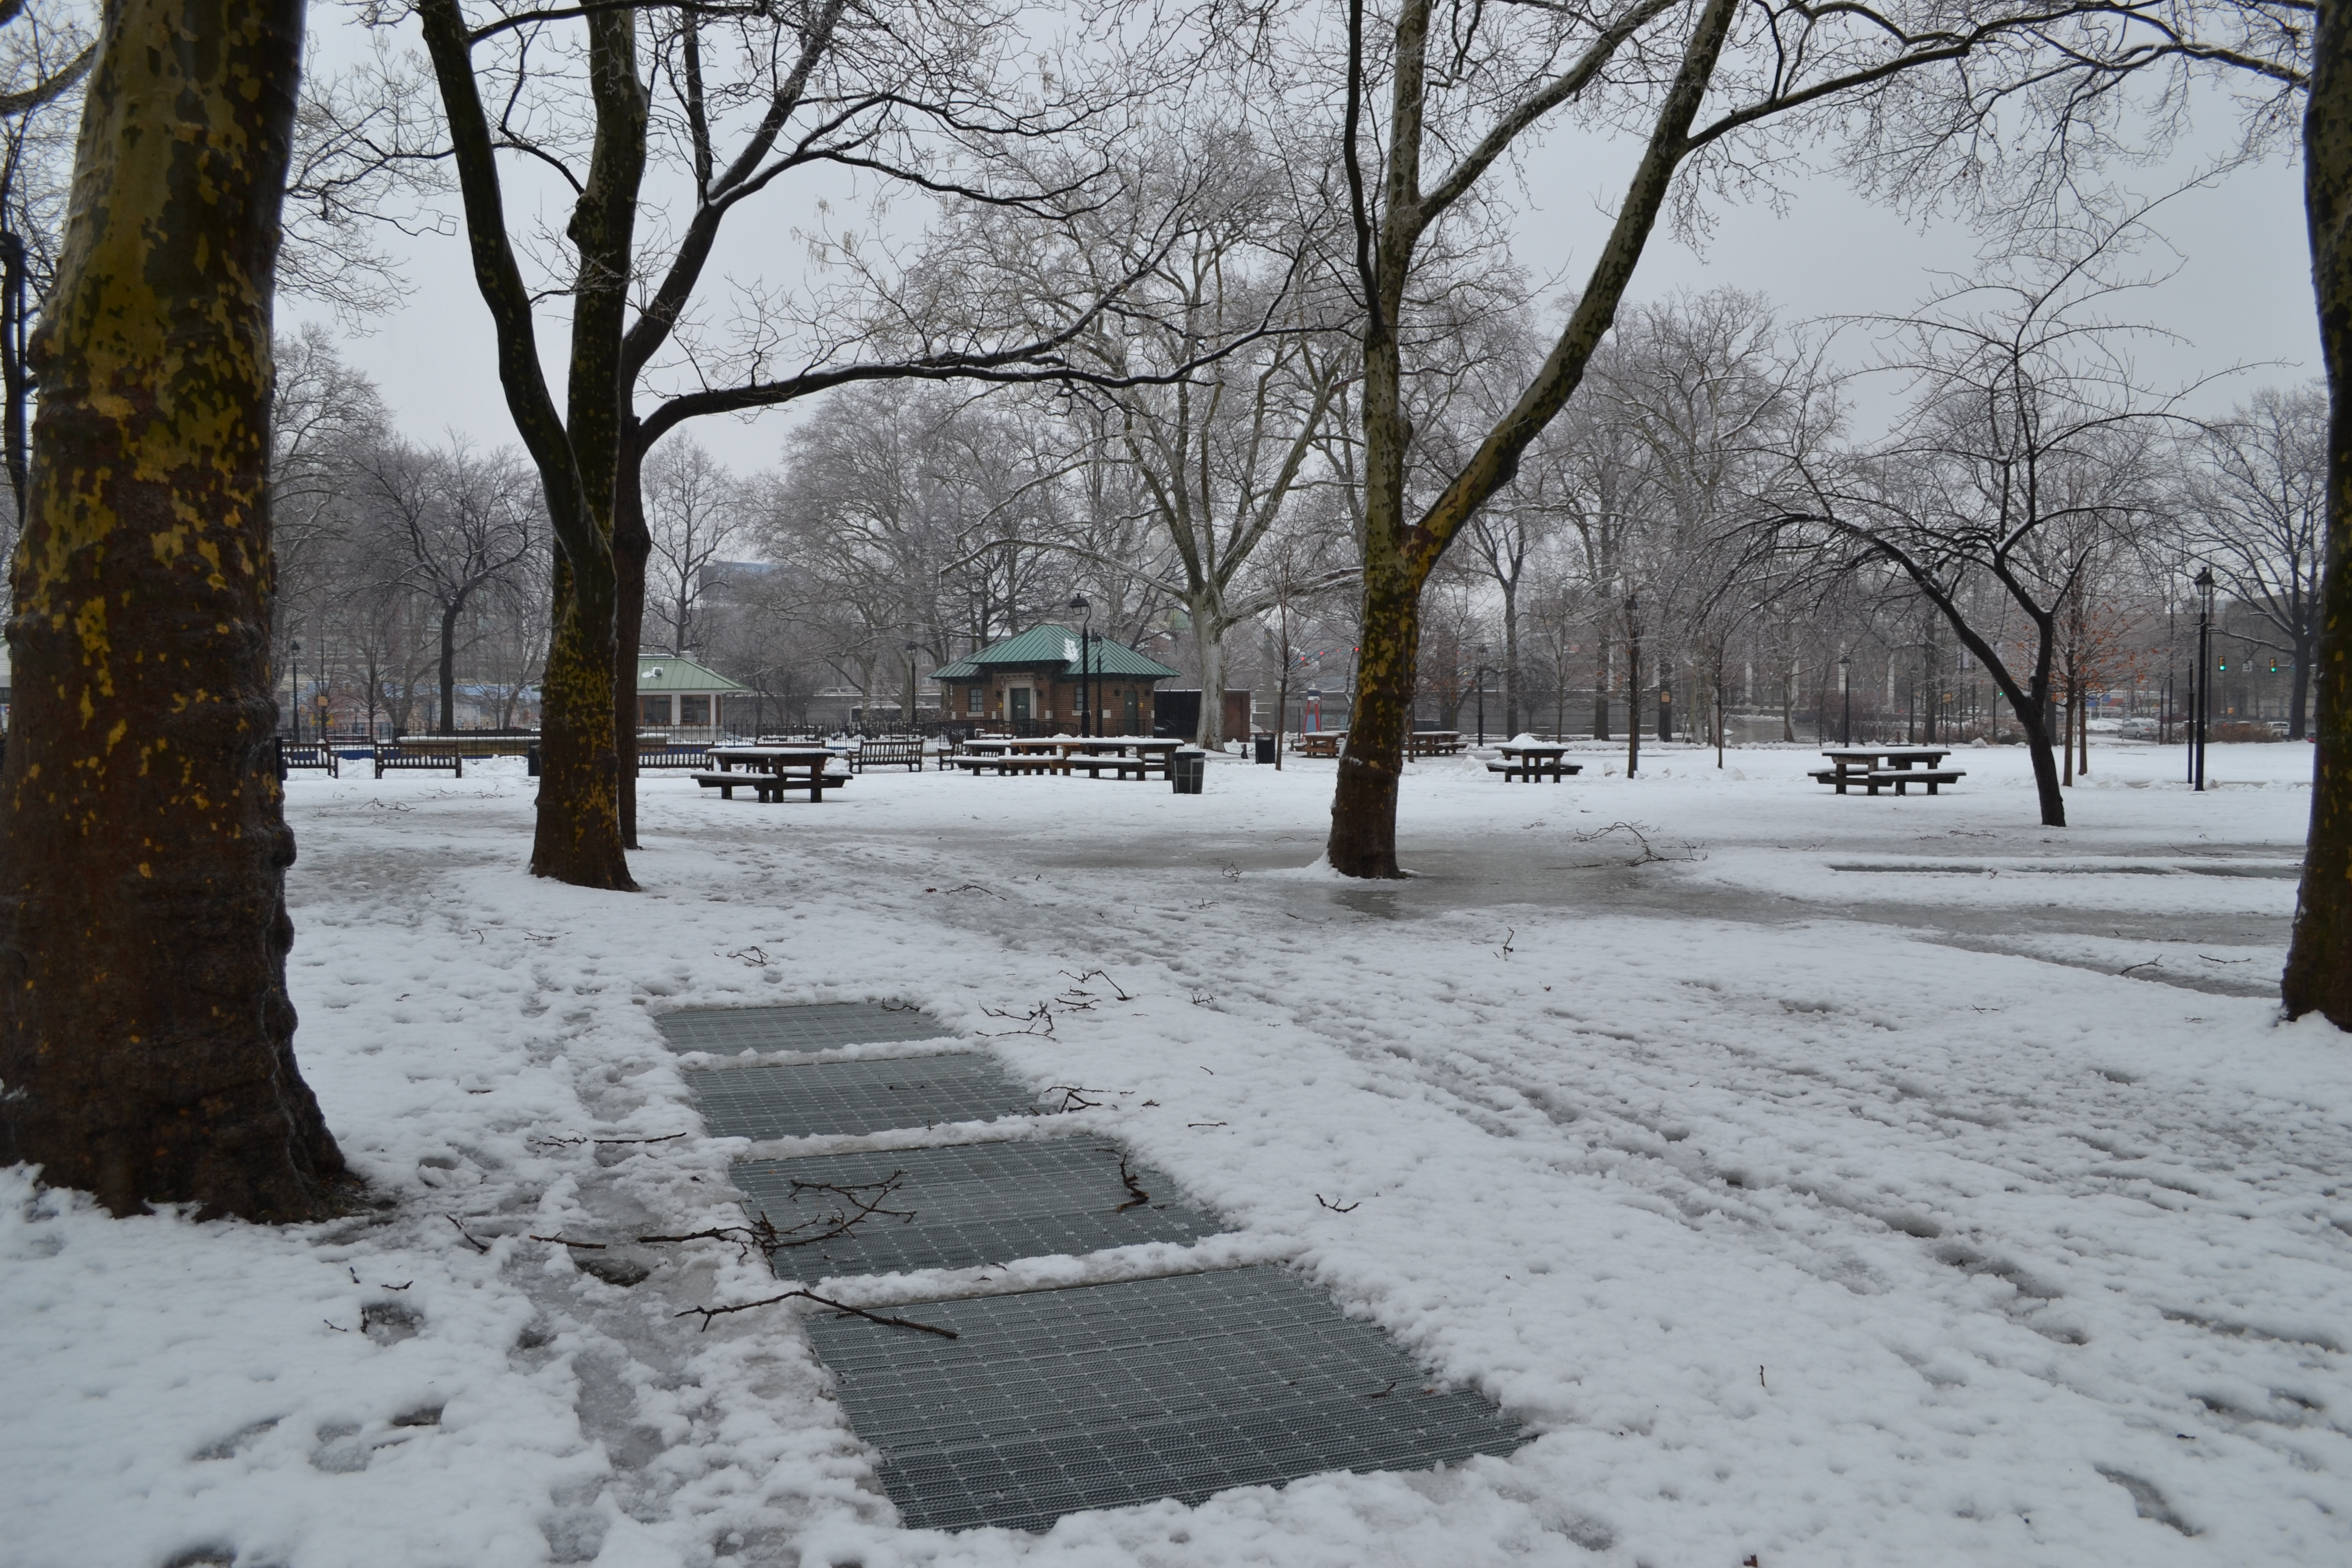 Even in the snow, subway grates betray the station's hiding space beneath the park